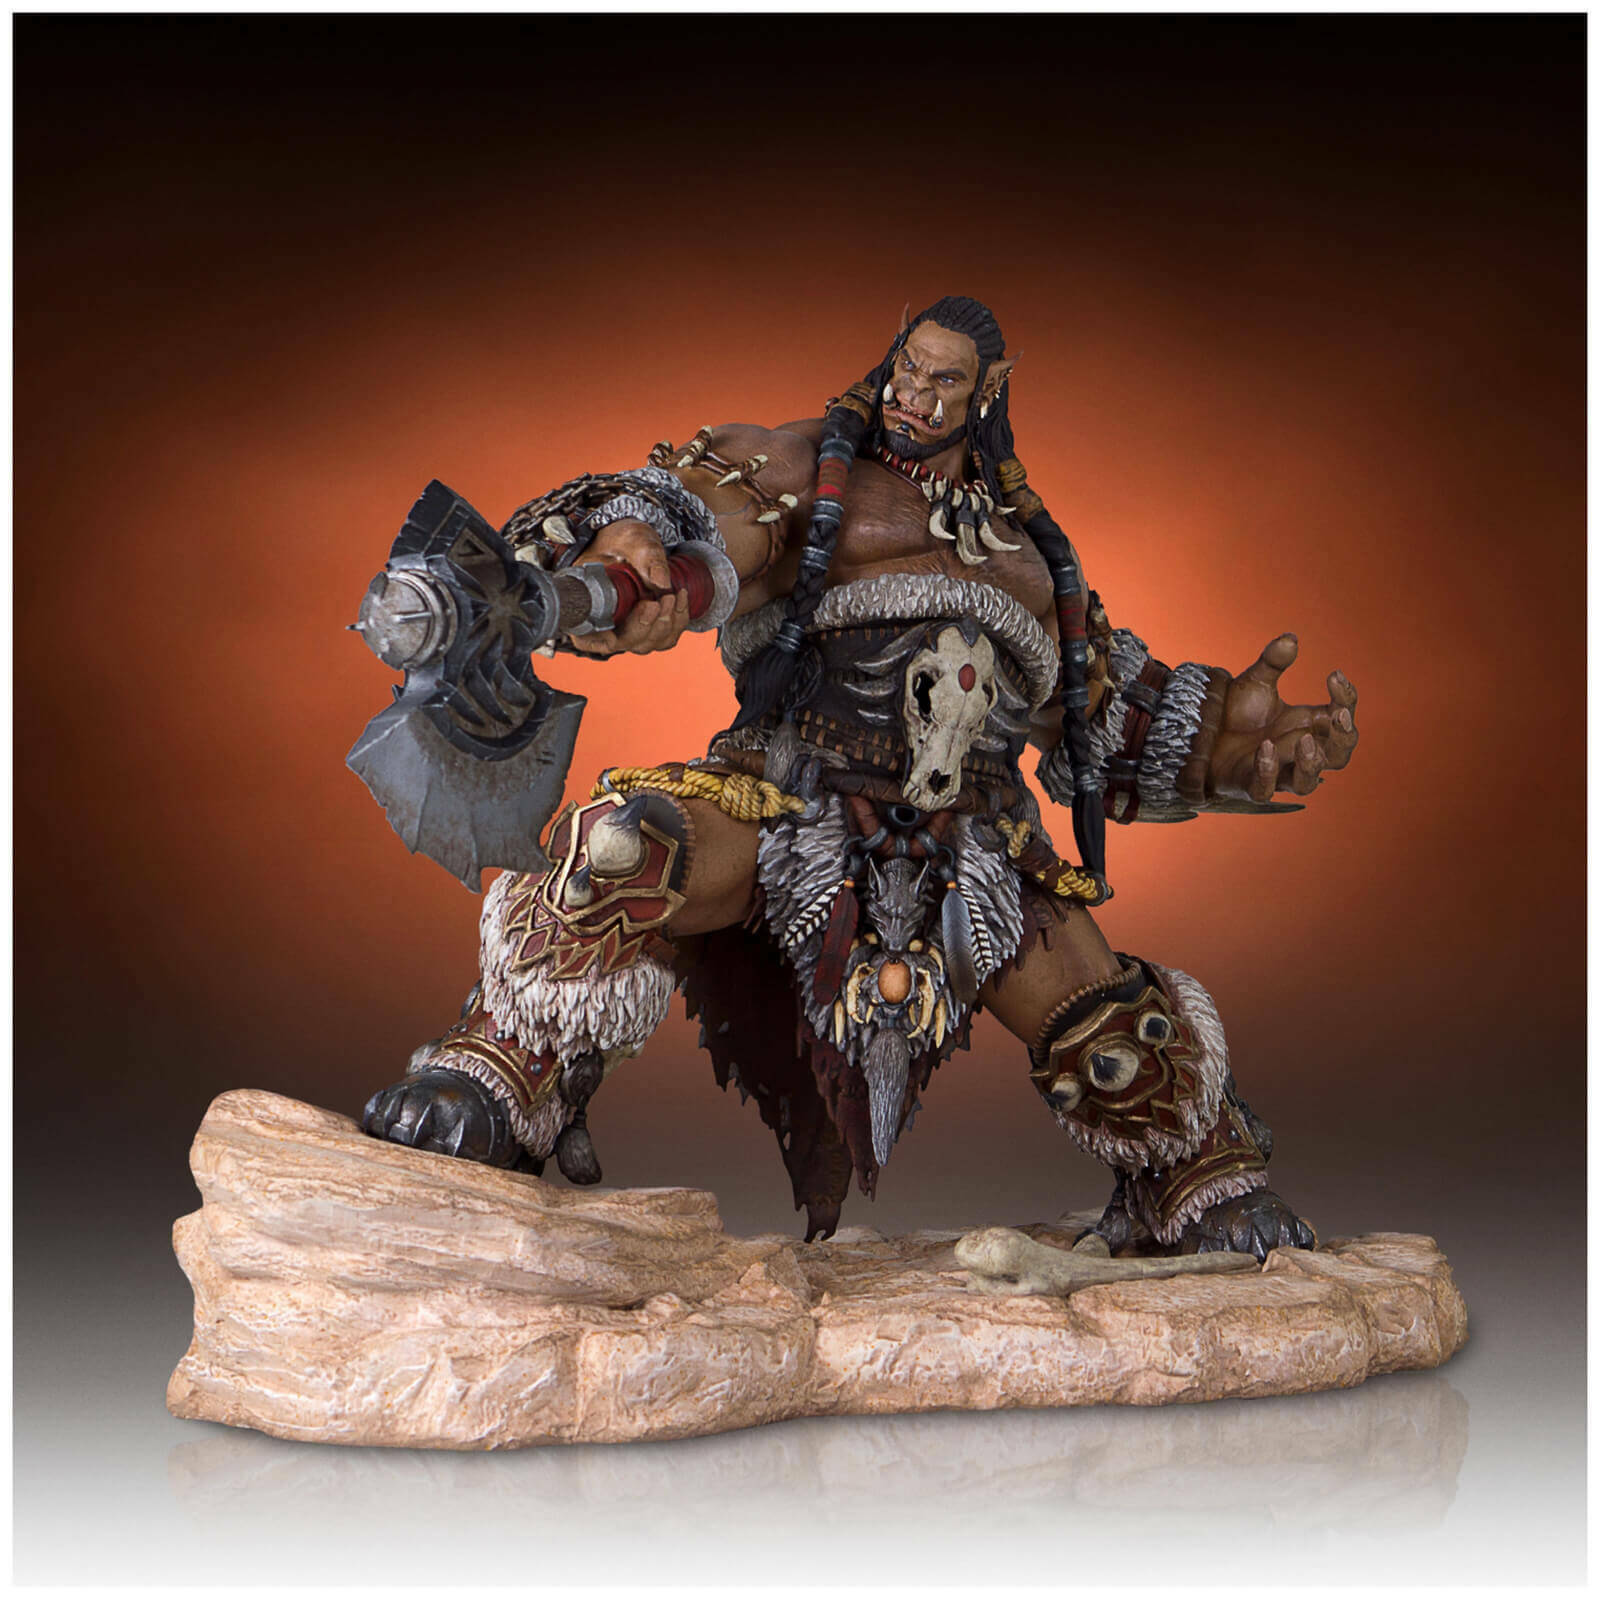 WORLD OF WARCRAFT - Durotan 1 6 Scale Statue (Gentle Giant)  NEW